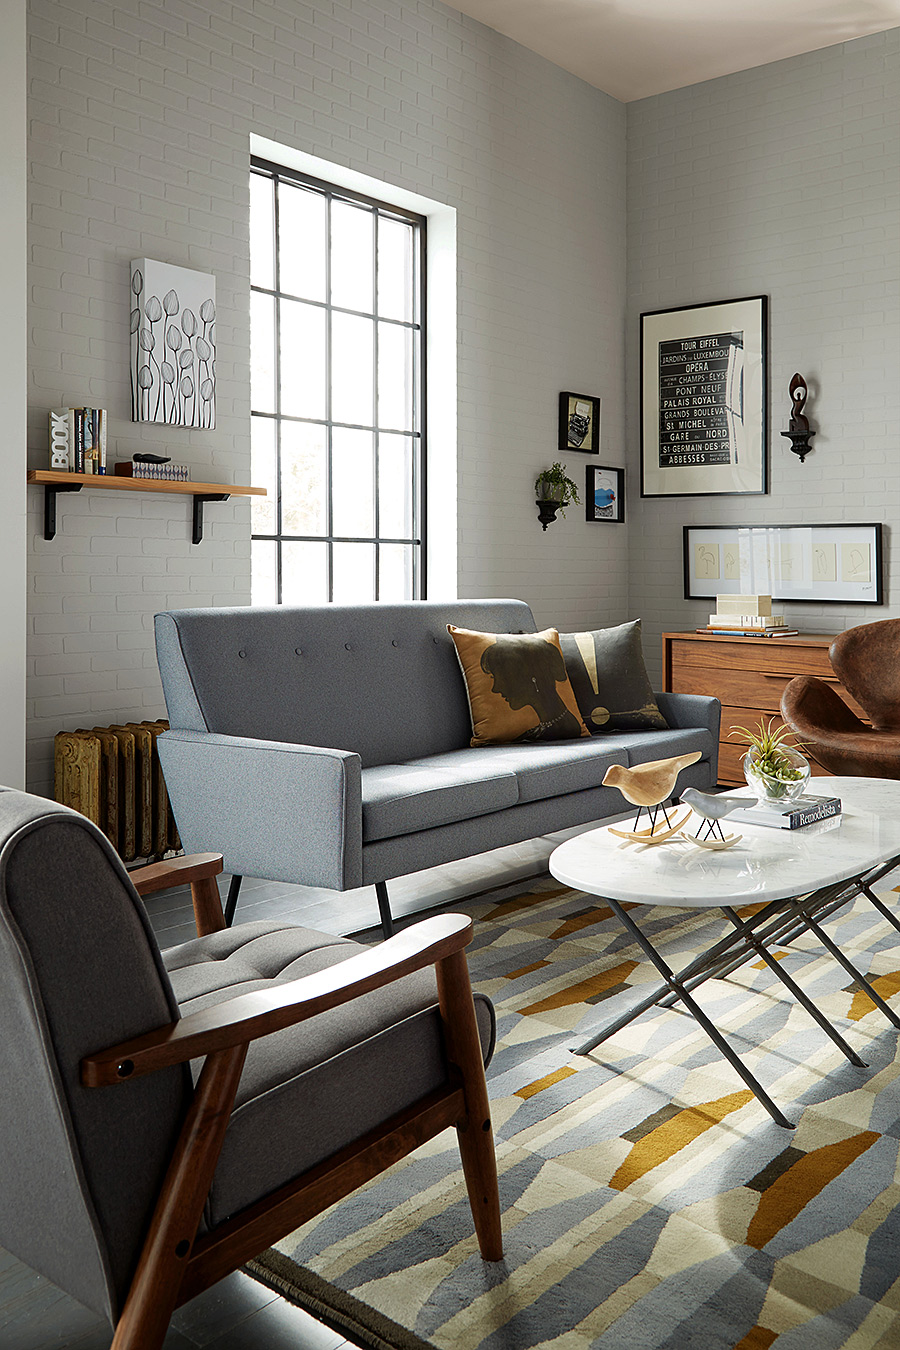 Living Room with Grey Color Scheme